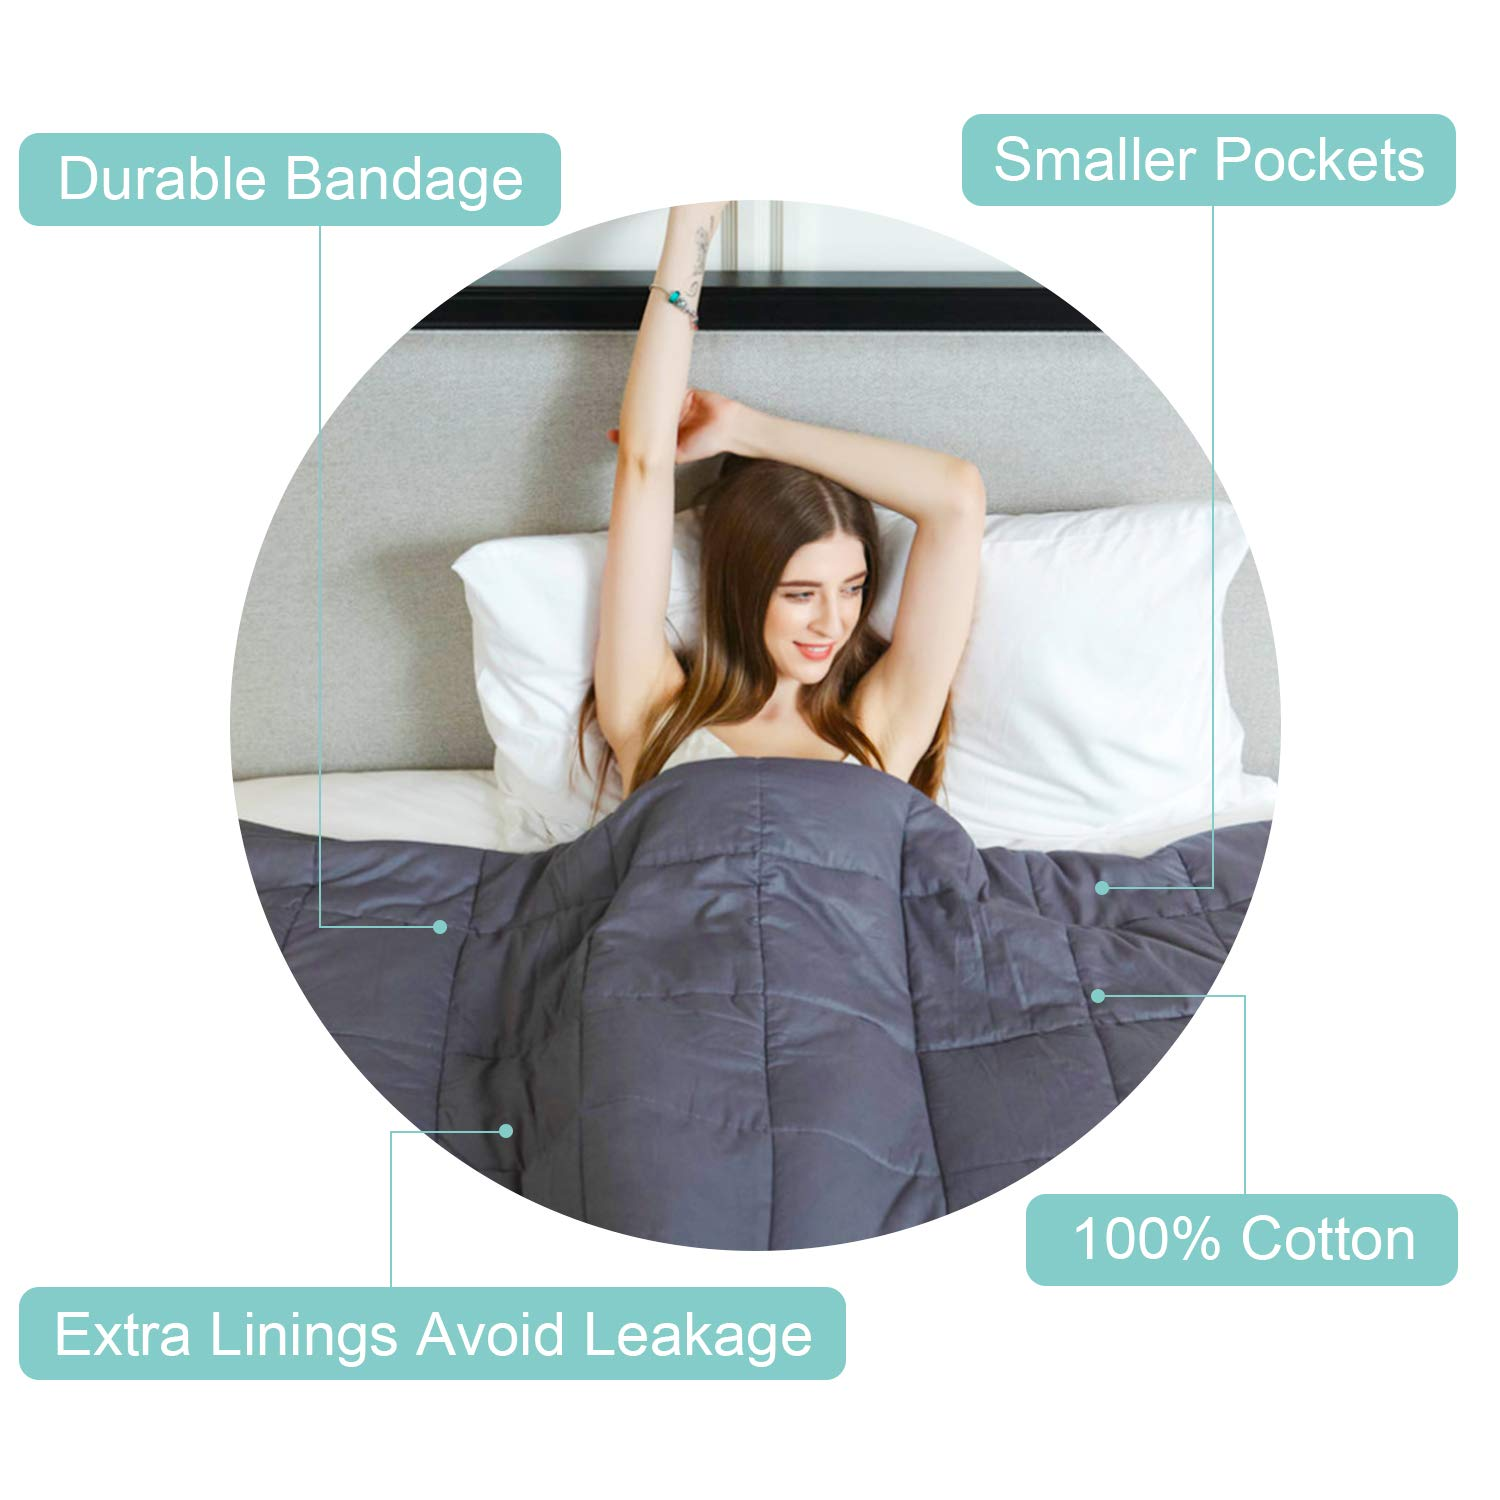 60 80 Heavy Blanket for Adults 100/% Cotton with Glass Beads SYOSIN 2.0 Weighted Blanket 20lbs, 60 80